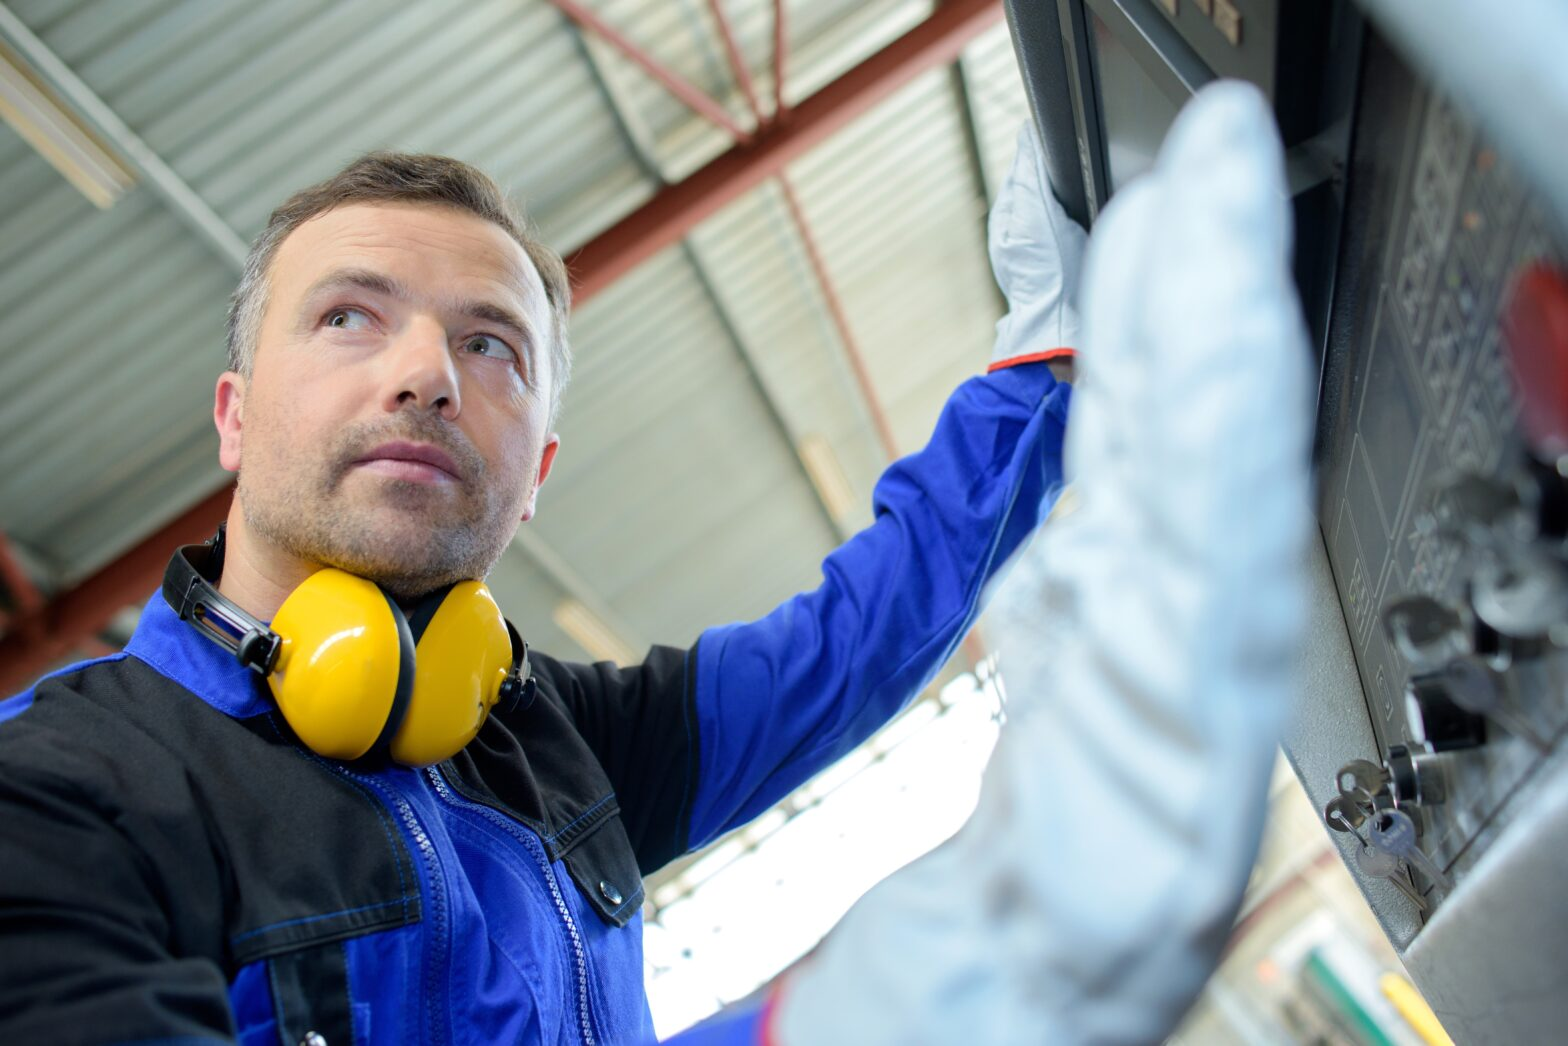 Man at work with hearing protection